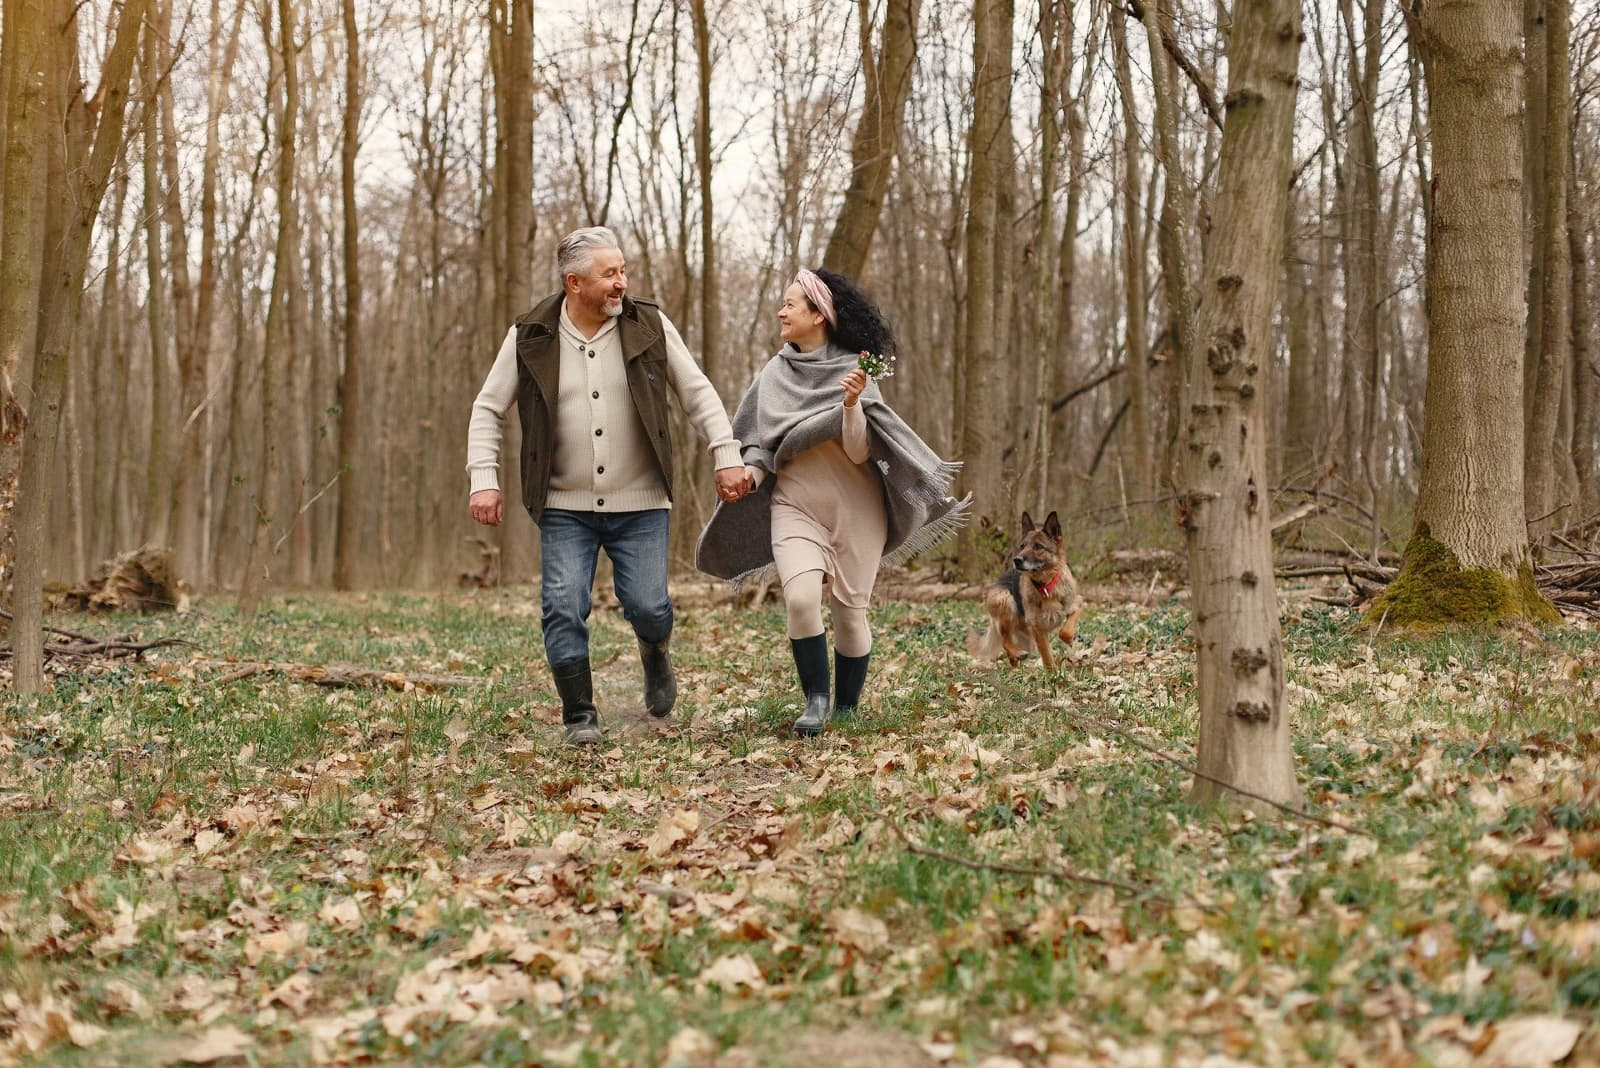 man and woman walking in forest with dog